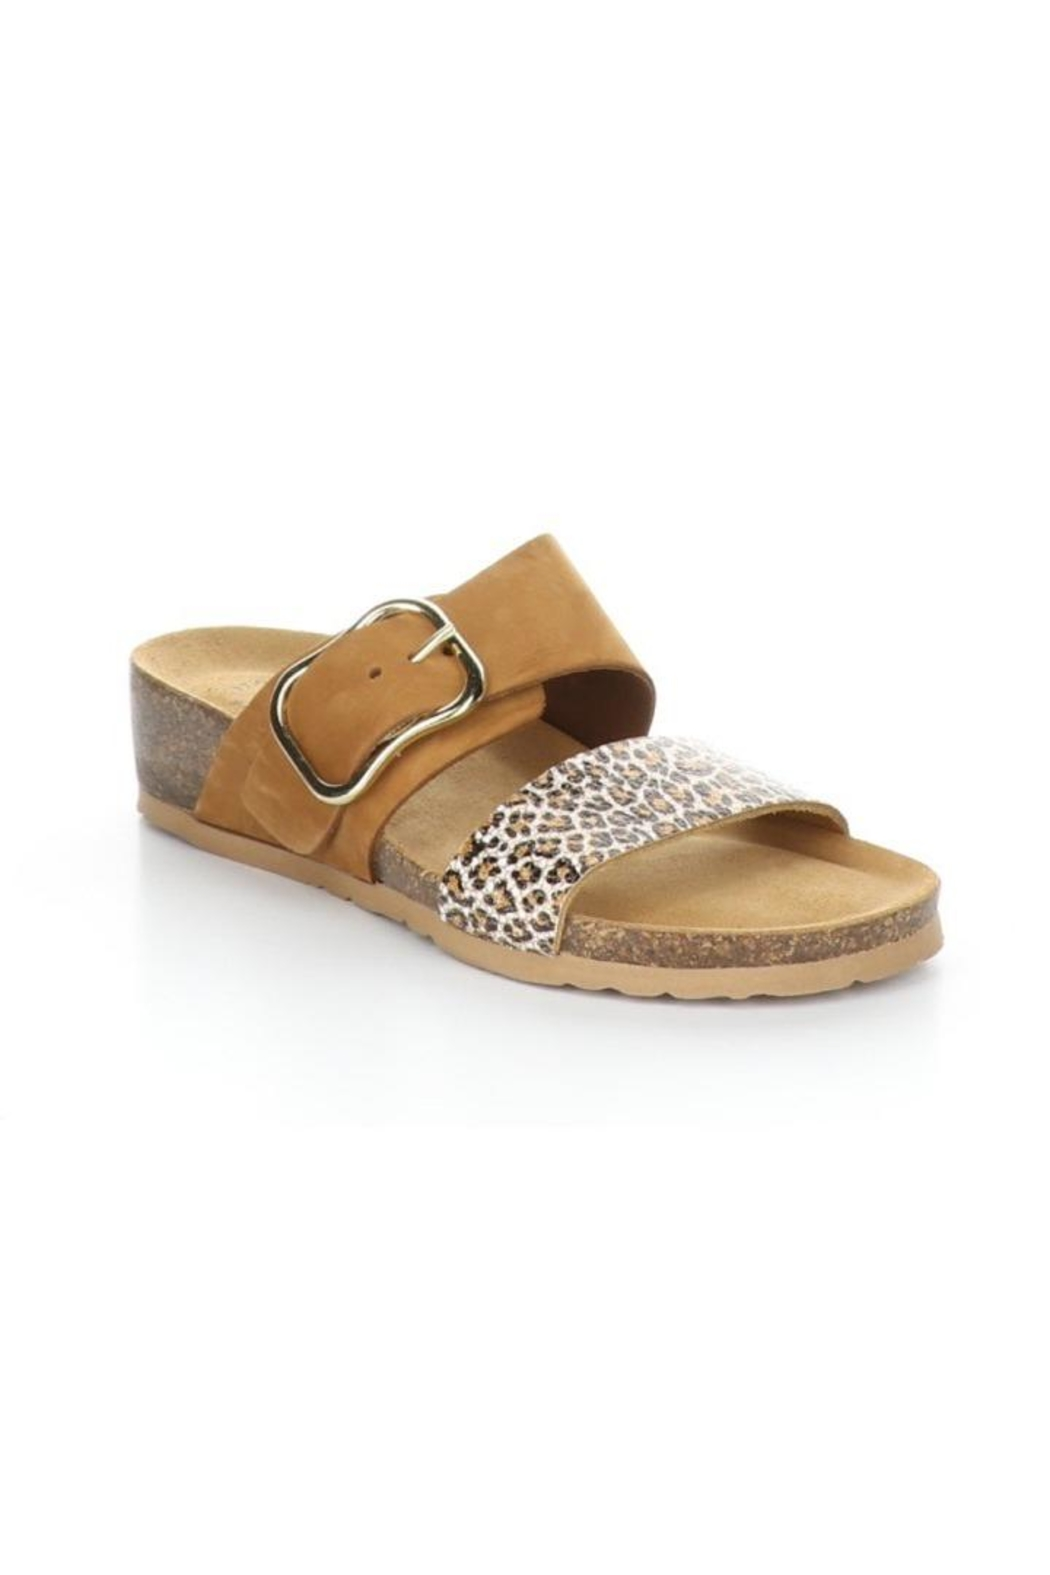 Bos & Co. Lapo Sandal In Brandy / Angelica - Main Image